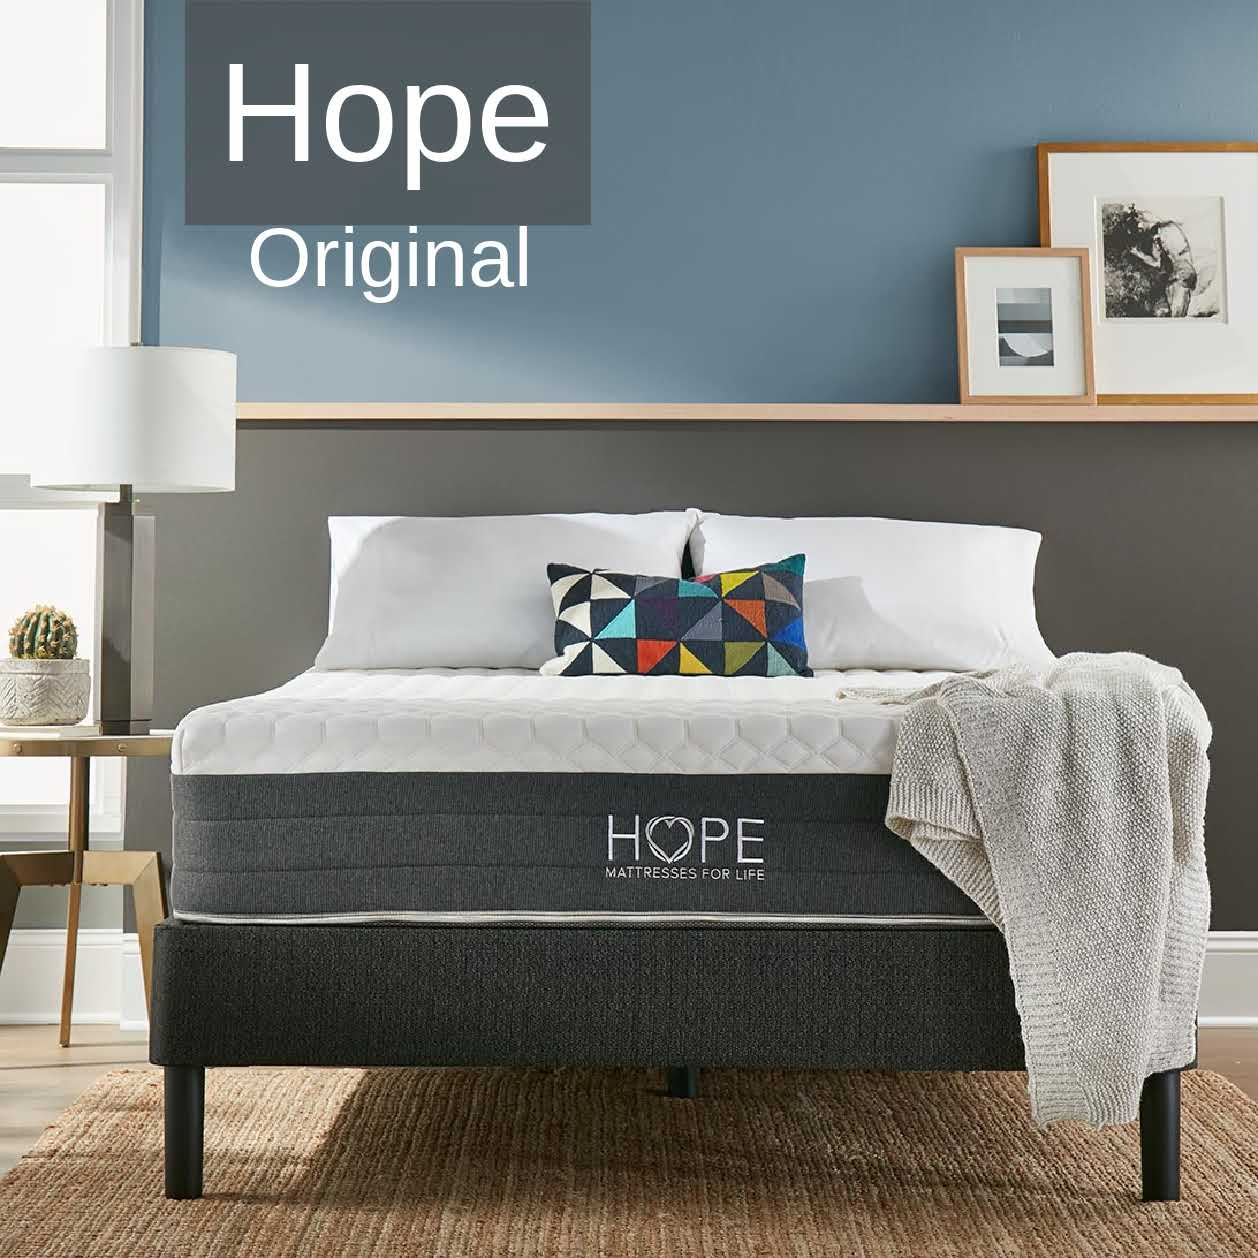 <hope signature collection, Hope Original, side sleeper, luxury and comfort, memory foam mattress, supportive mattress, made in the USA, CertiPUR-US certified, cooling, best mattress, free shipping,120-day trial, lifetime warranty>